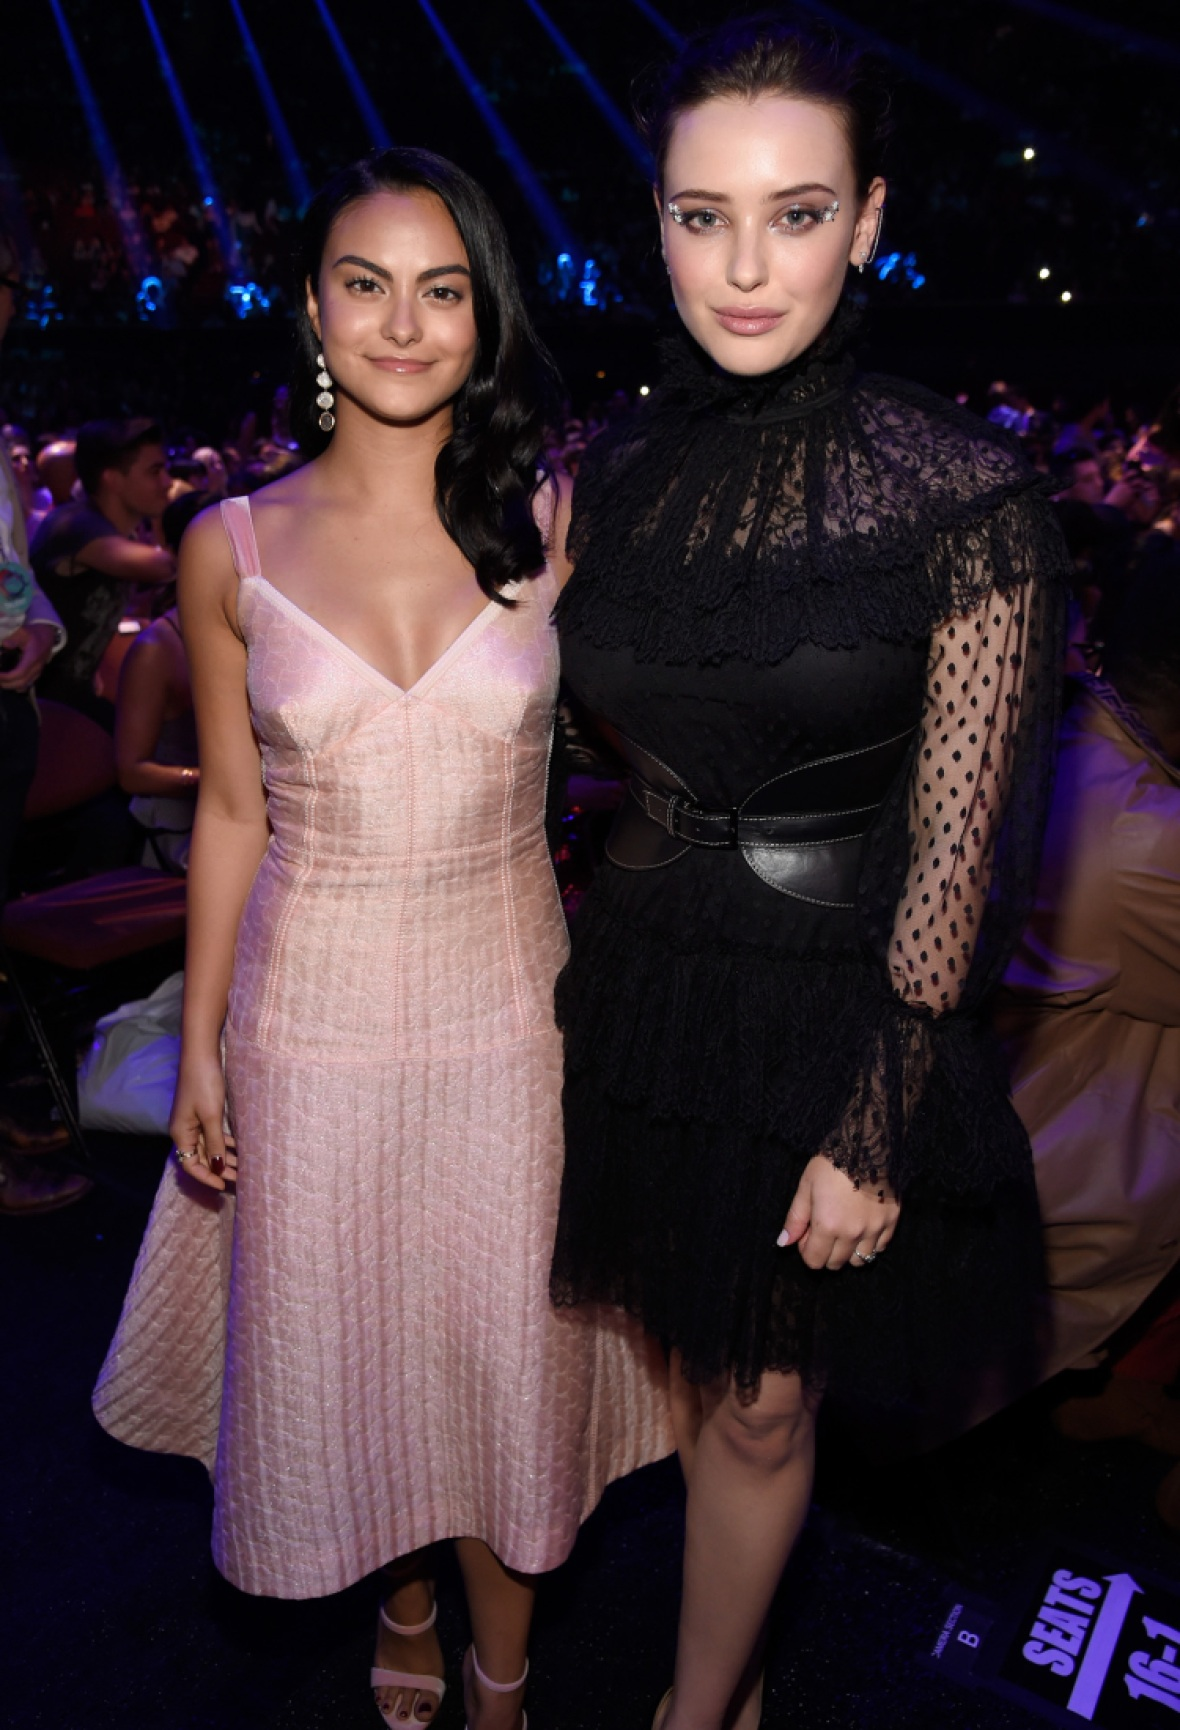 camila mendes and katherine langford